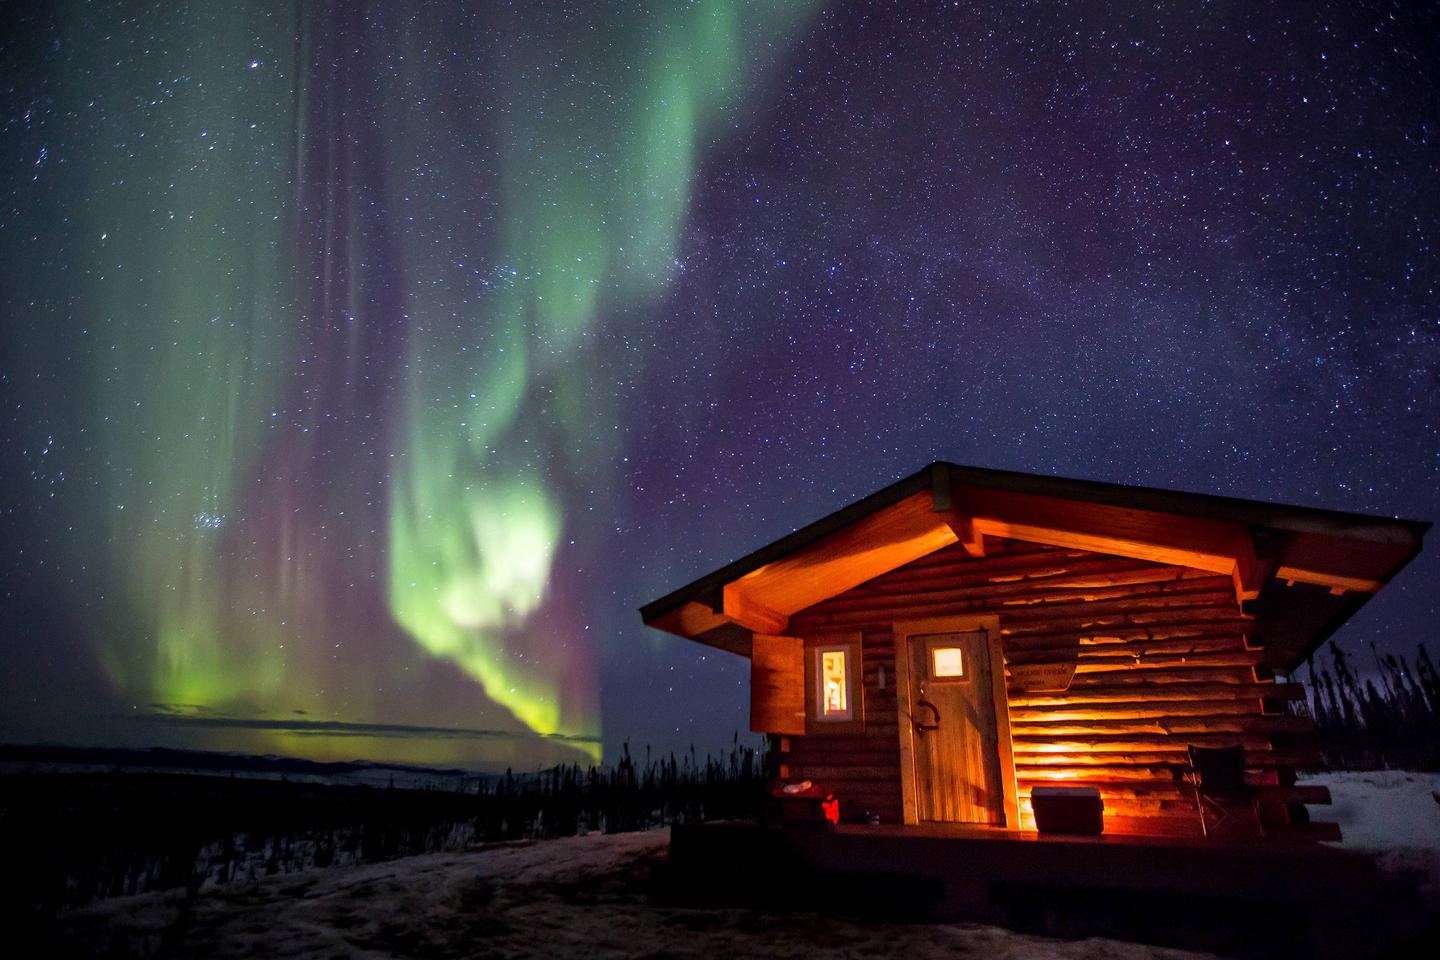 A cabin beneath a starry sky with northern lights.Northern lights dance against a starry sky at Moose Creek Cabin.